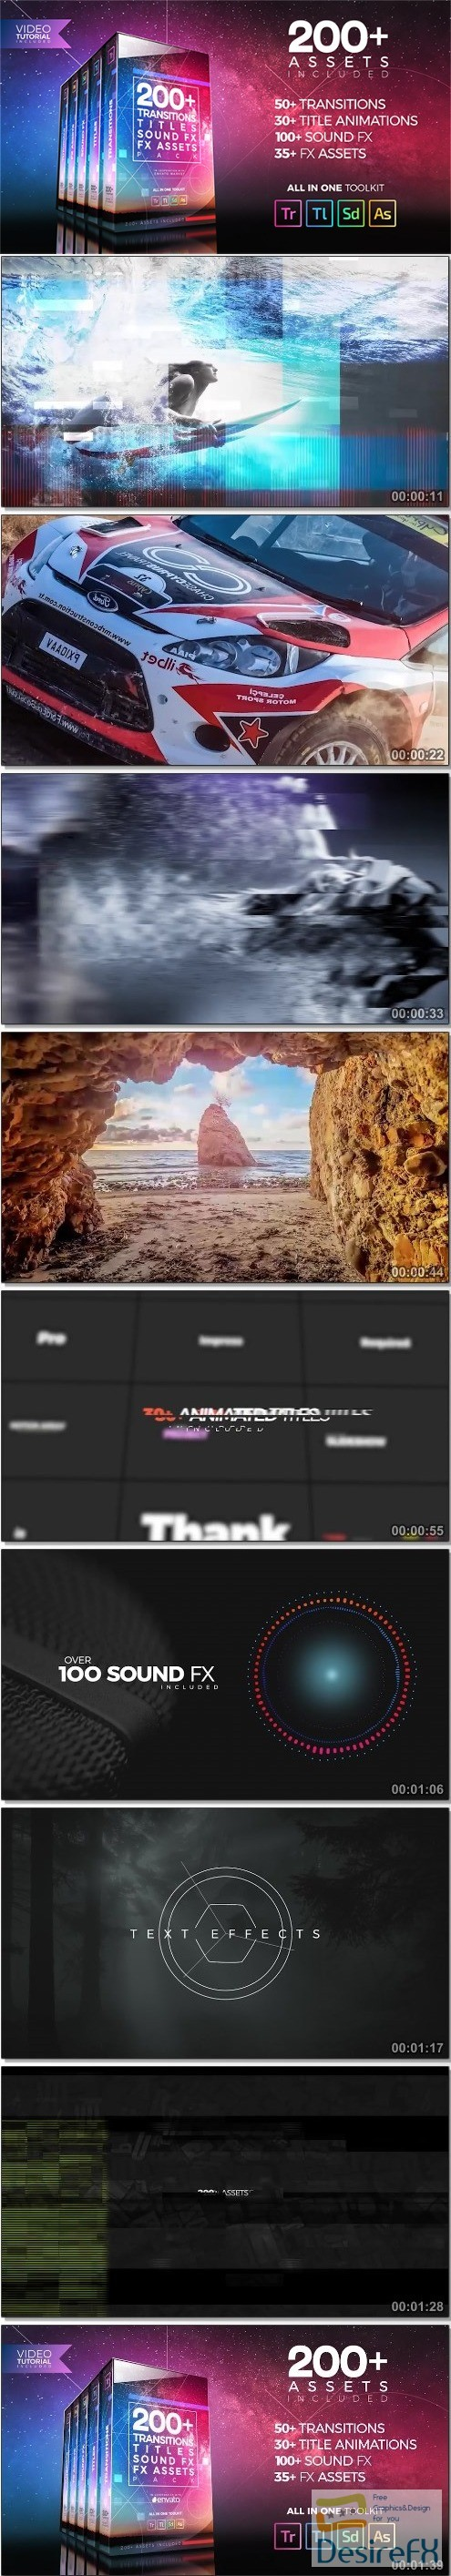 premiere-pro - Videohive 200+ Pack: Transitions, Titles, Sound FX 21474240